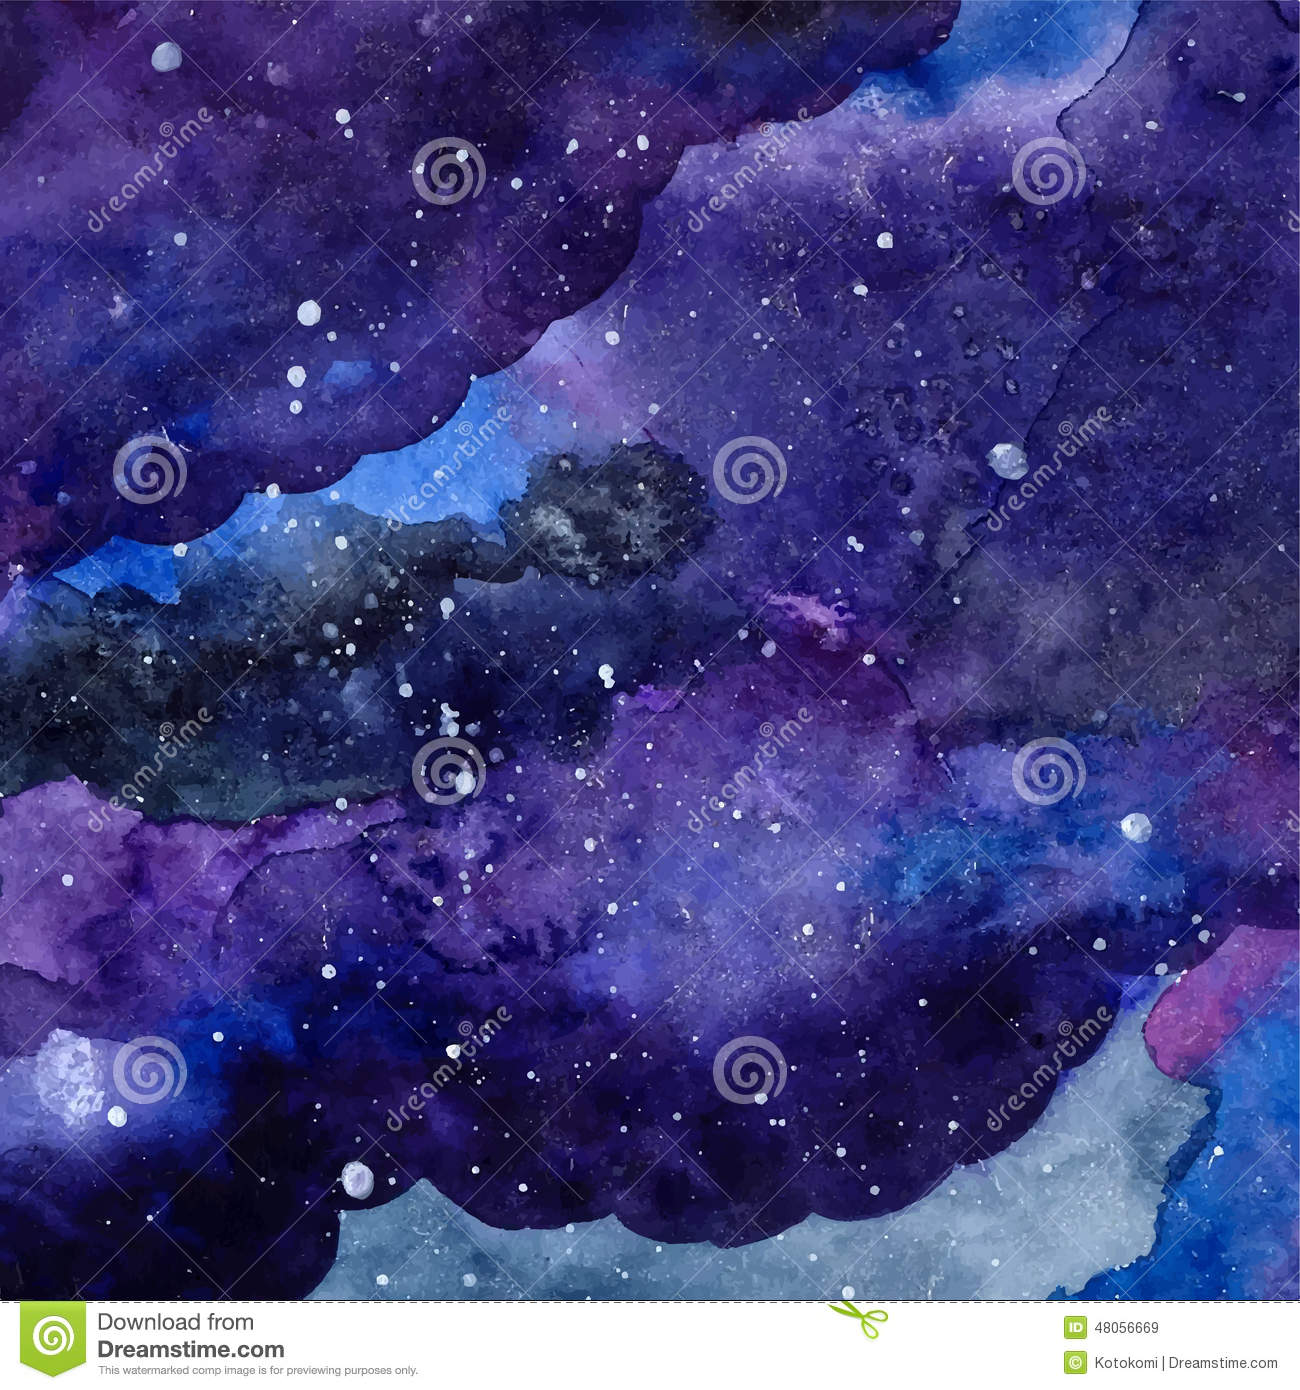 Watercolor Space Texture With Glowing Stars Night Starry